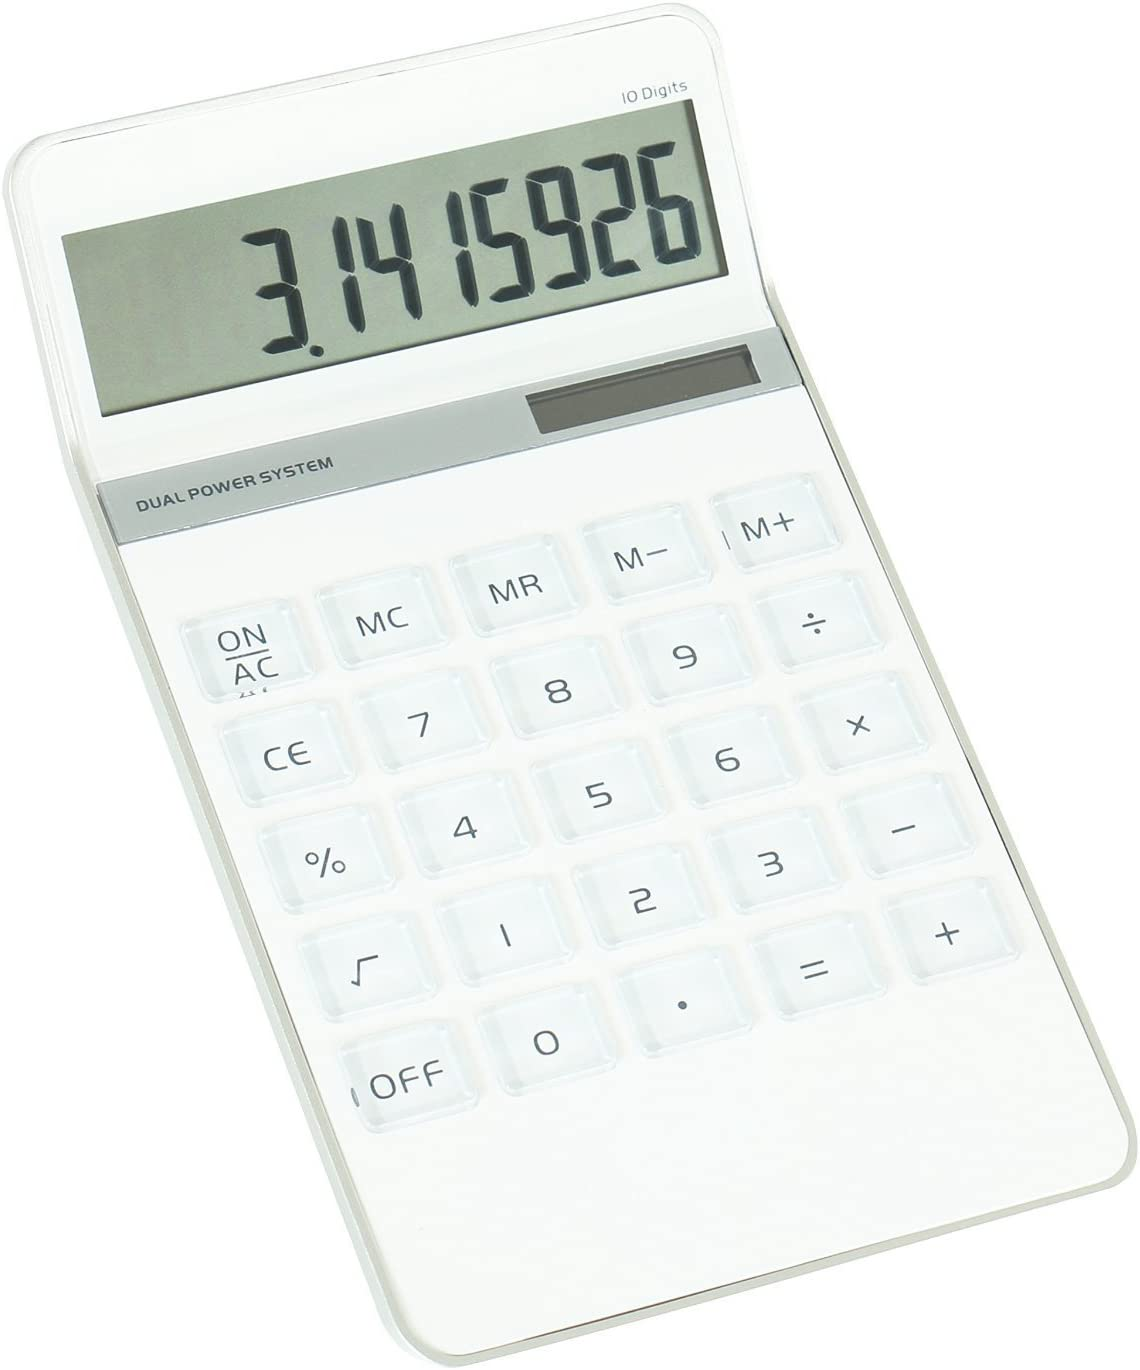 Elegant Design Pure White 10 Digit Dual Powered Standard Function Calculator Desktop Calculator